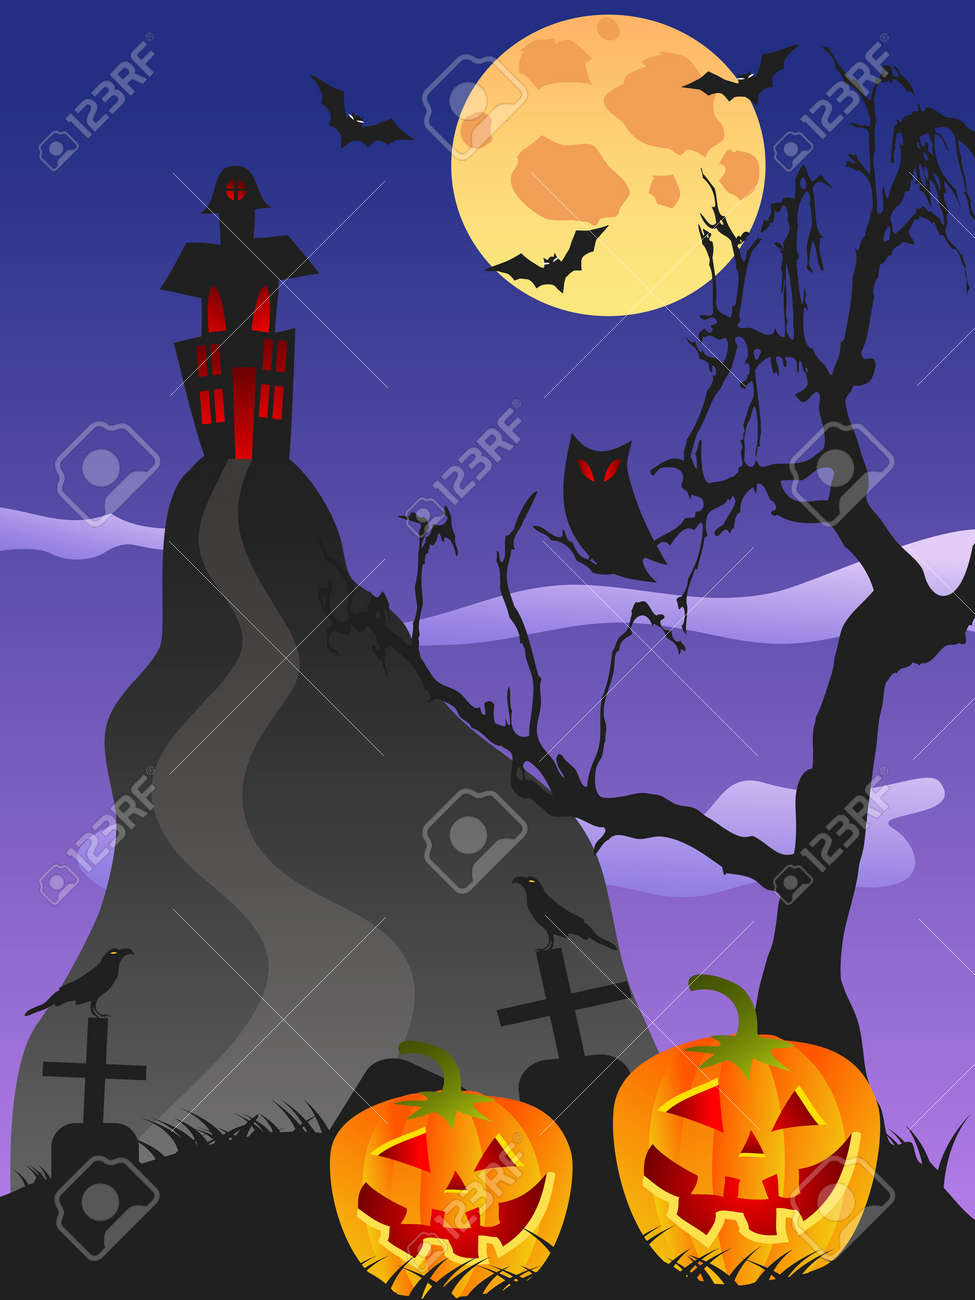 spooky halloween background with halloween related themes for